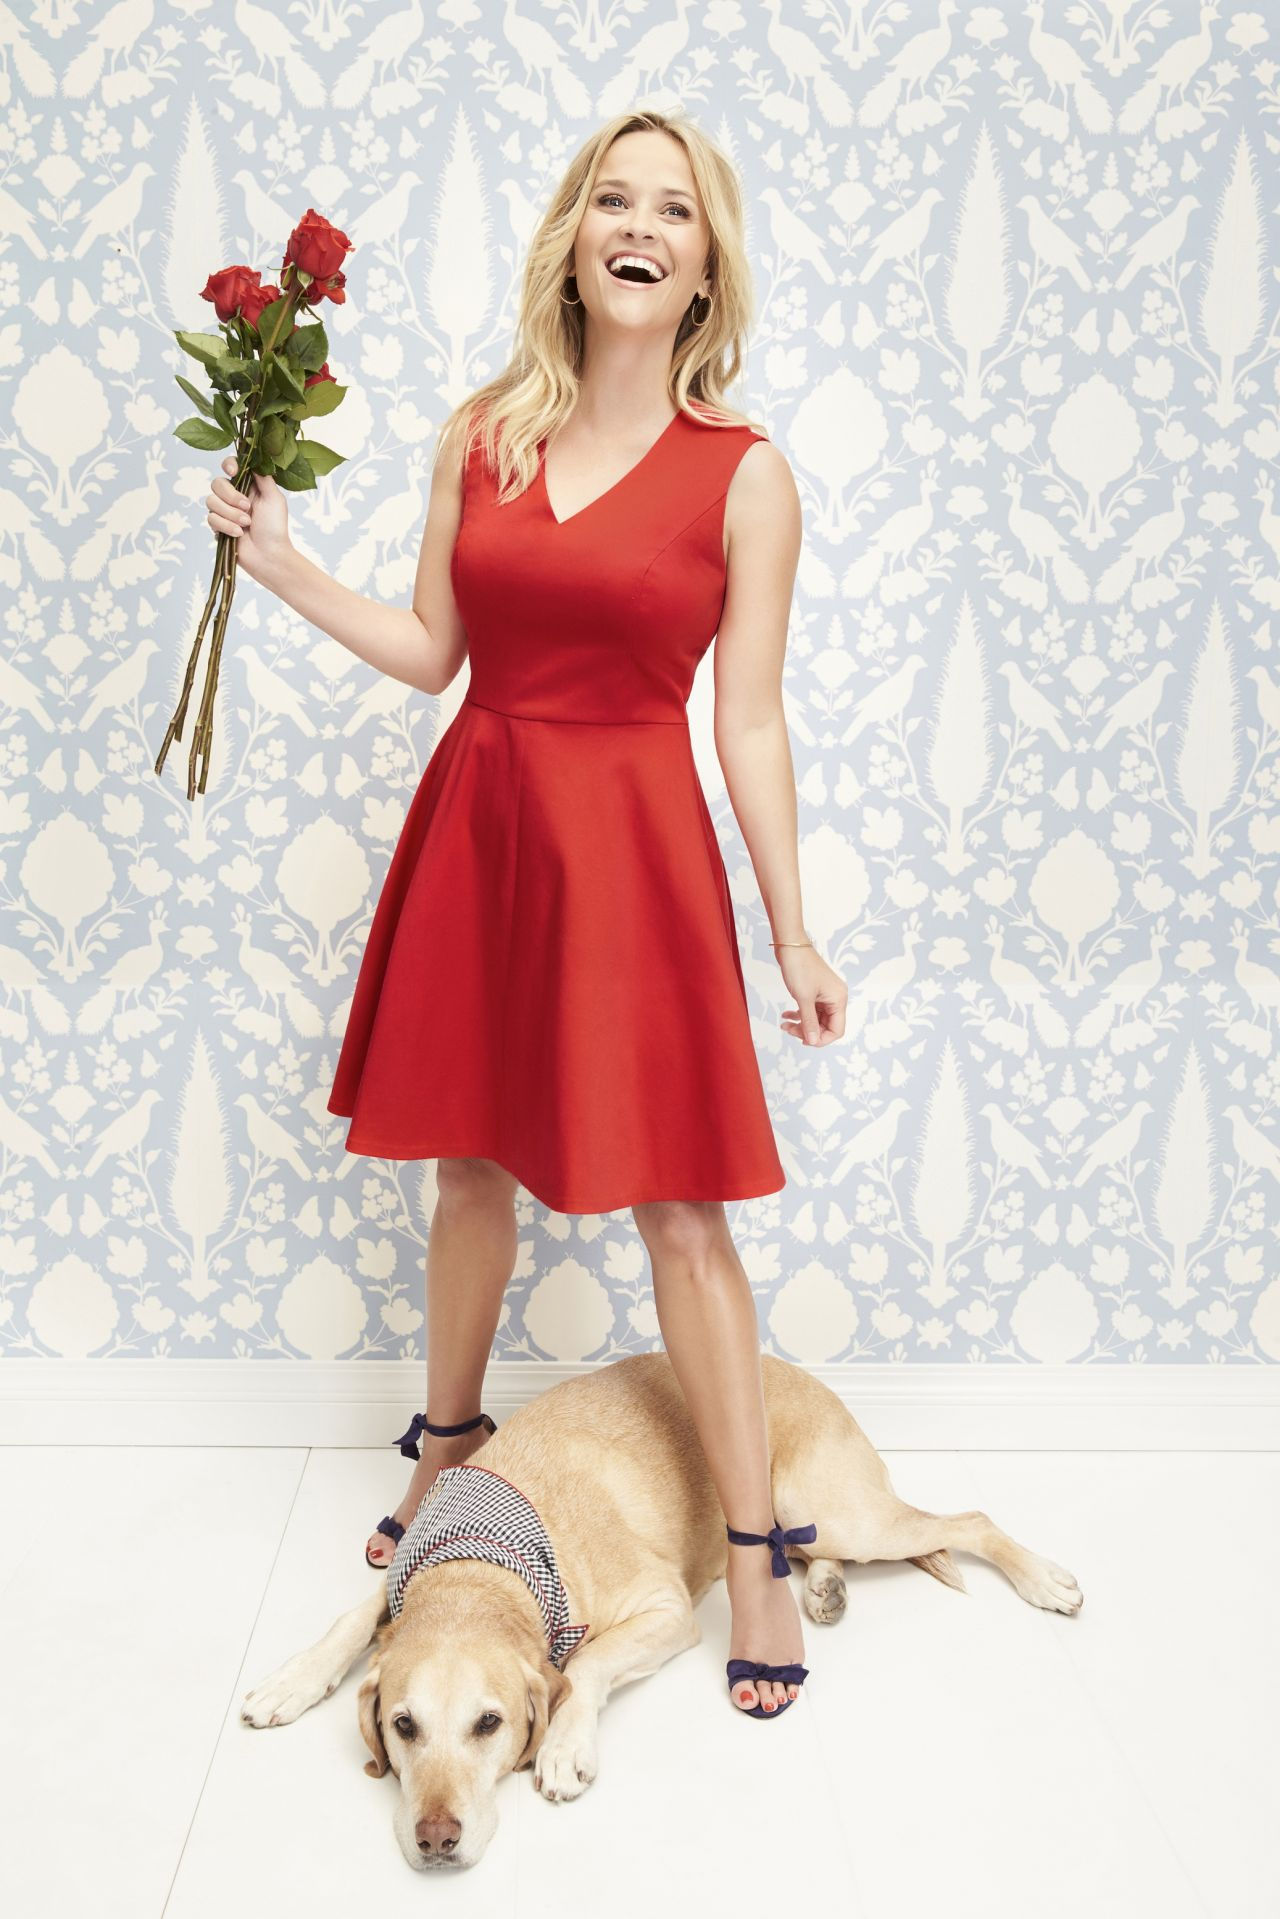 http://celebmafia.com/wp-content/uploads/2018/02/reese-witherspoon-and-ava-phillippe-valentine-s-day-campaign-02-01-2018-3.jpg